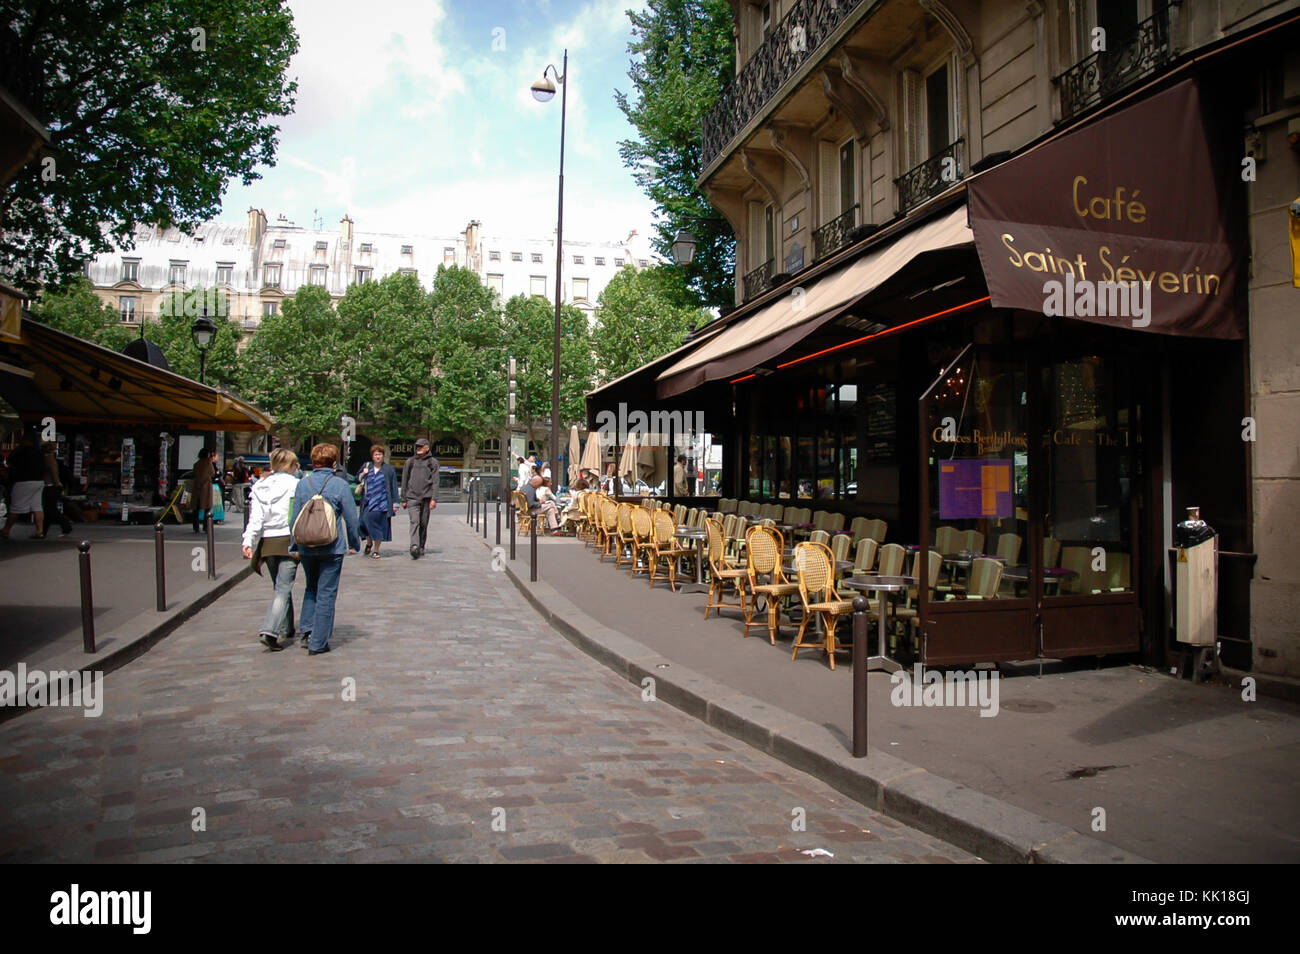 Small cafe in streets paris stock photos small cafe in for Restaurant miroir paris 18